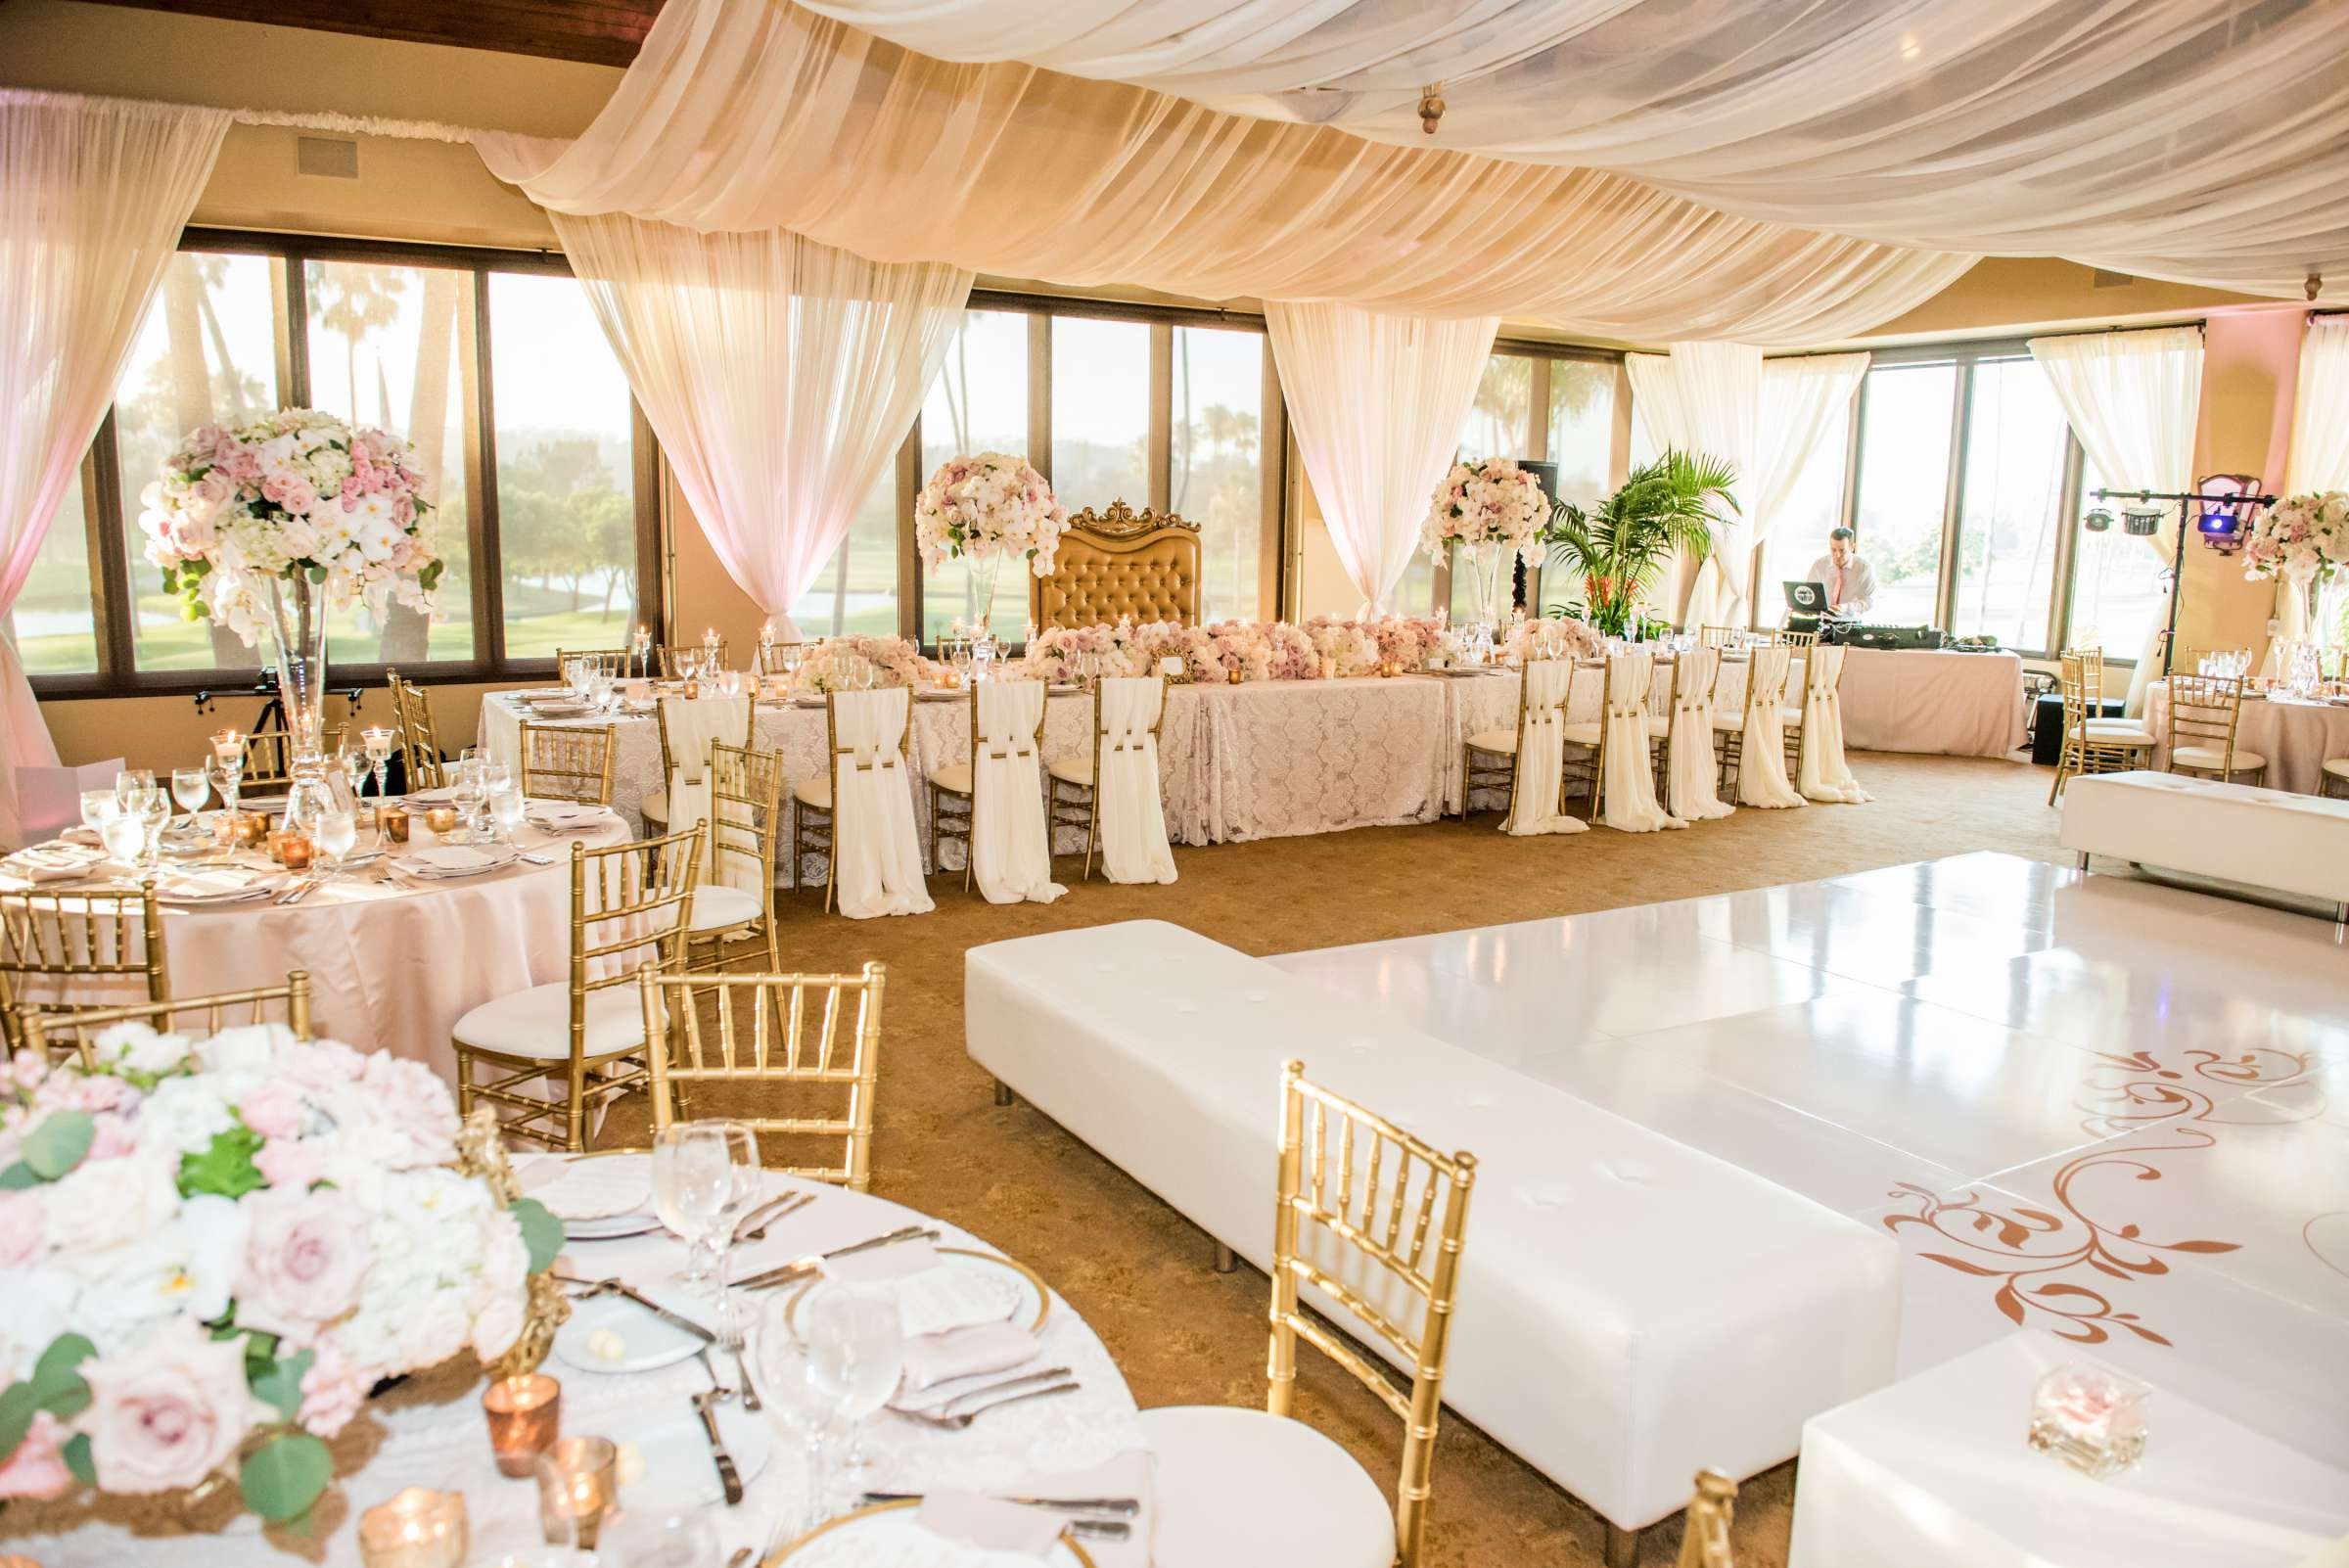 Fairbanks Ranch Country Club Wedding coordinated by Monarch Weddings, Gabriella and Kyle Wedding Photo #218 by True Photography